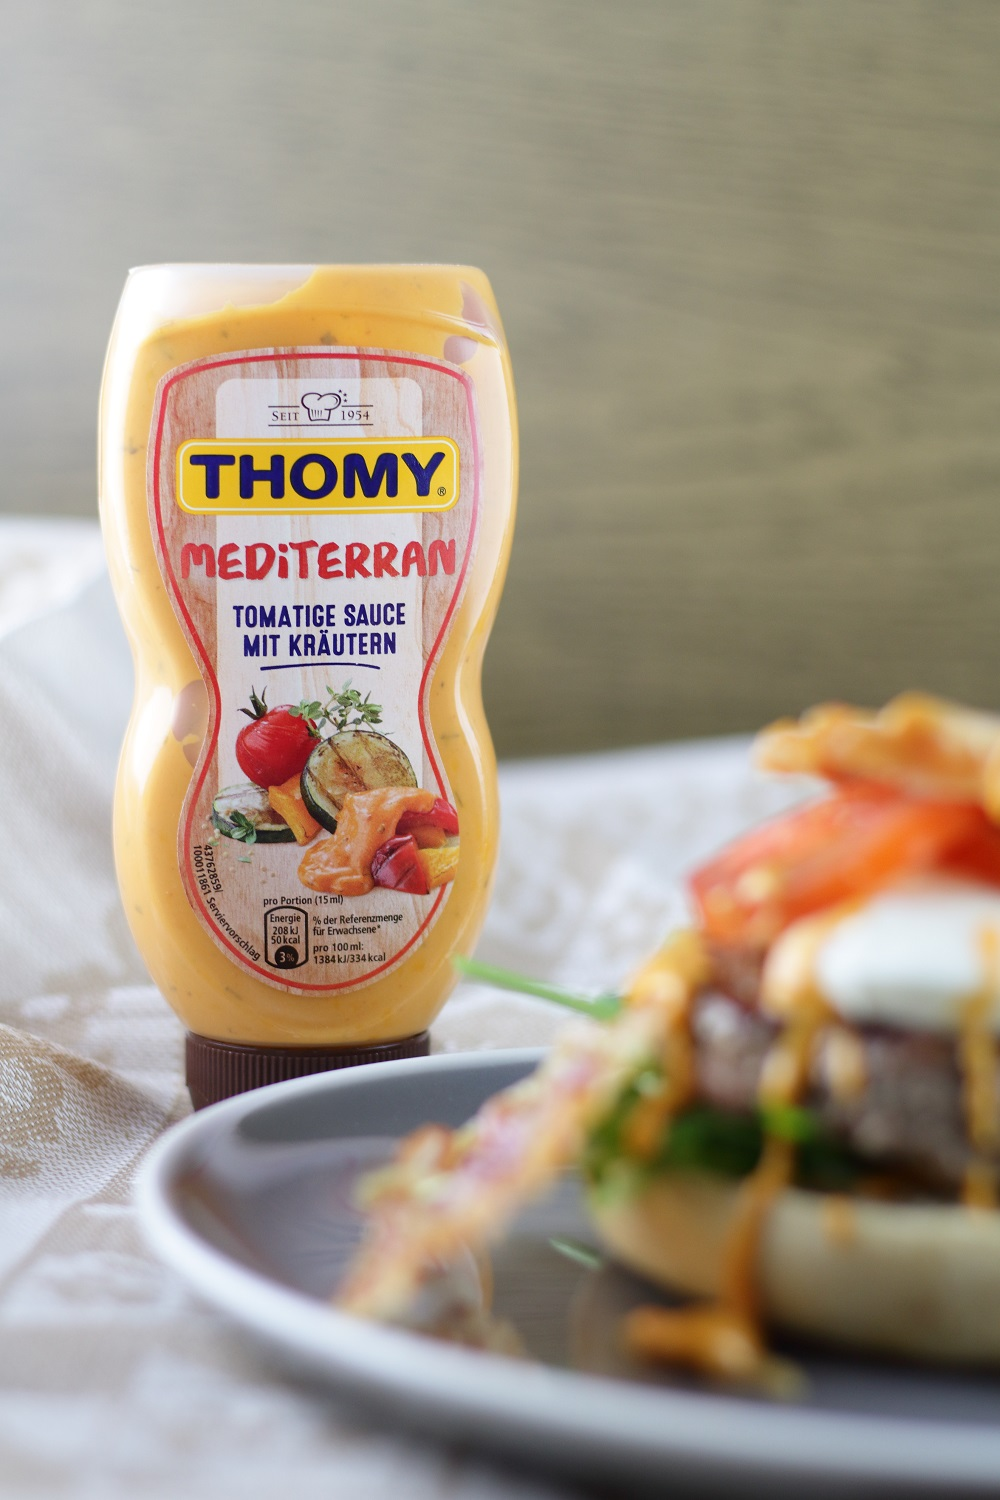 [Anzeige] Mein mediterraner Italian Burger & das THOMY Burger Battle 2018 - THOMY mediterrane Sauce